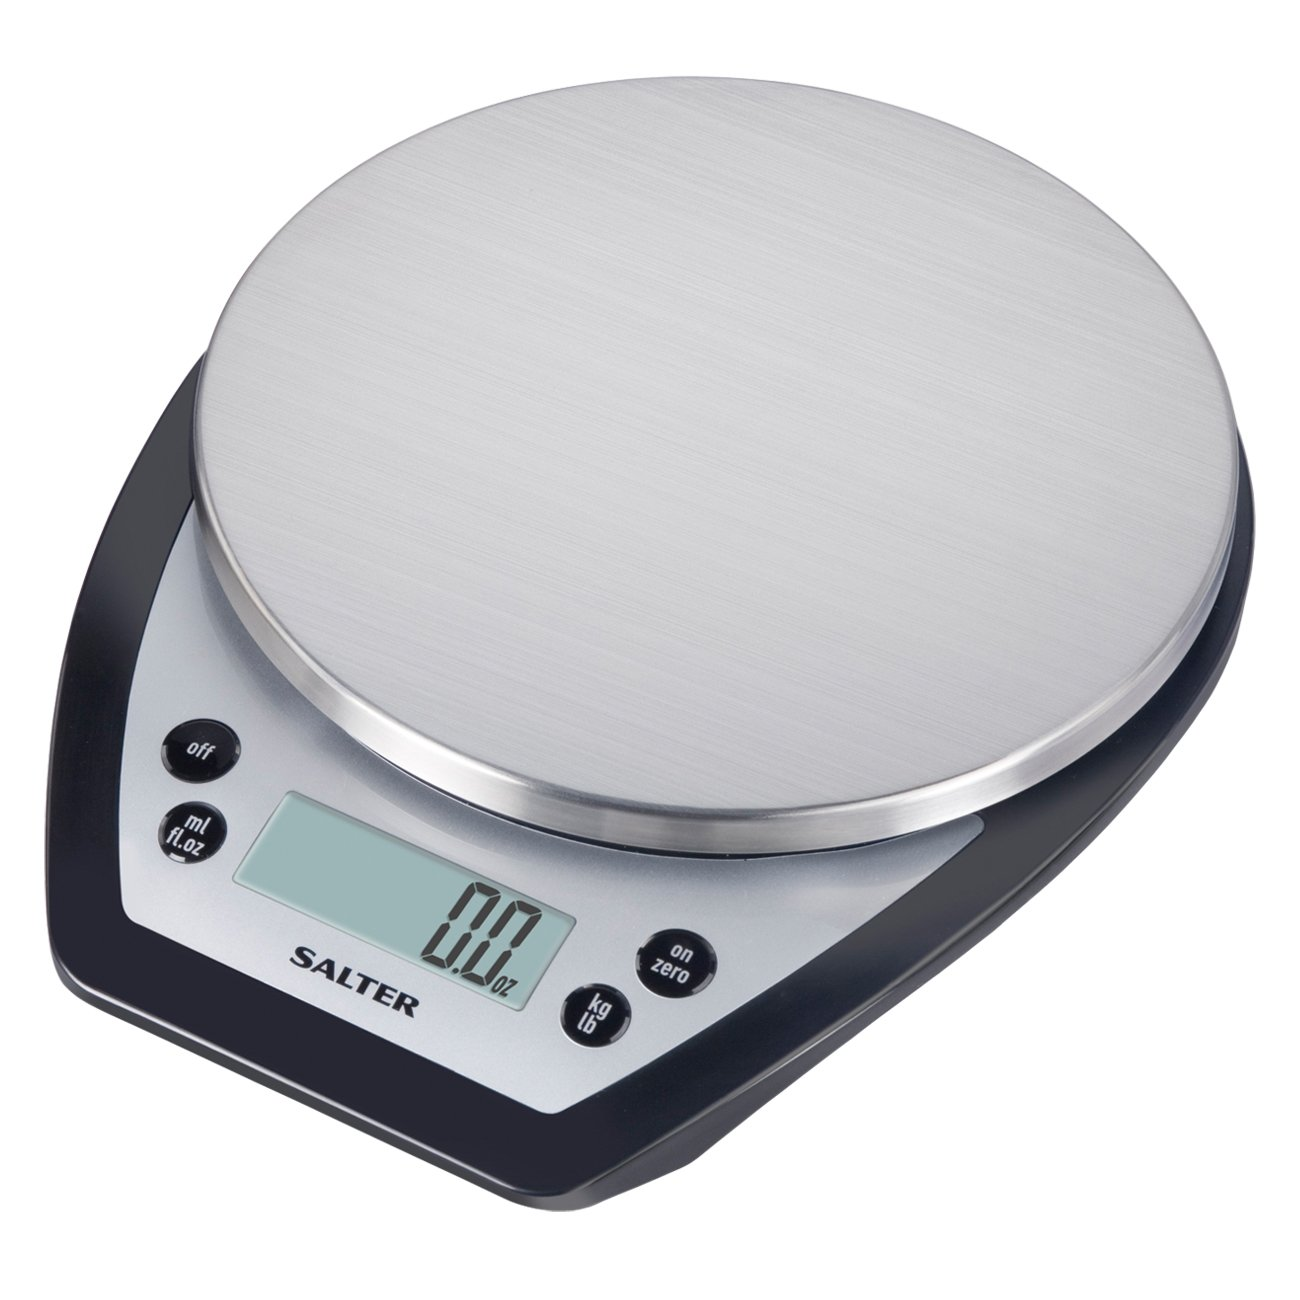 Amazon.com: Salter Aquatronic Digital Kitchen Scale (Silver And Black):  Digital Kitchen Scales: Kitchen U0026 Dining